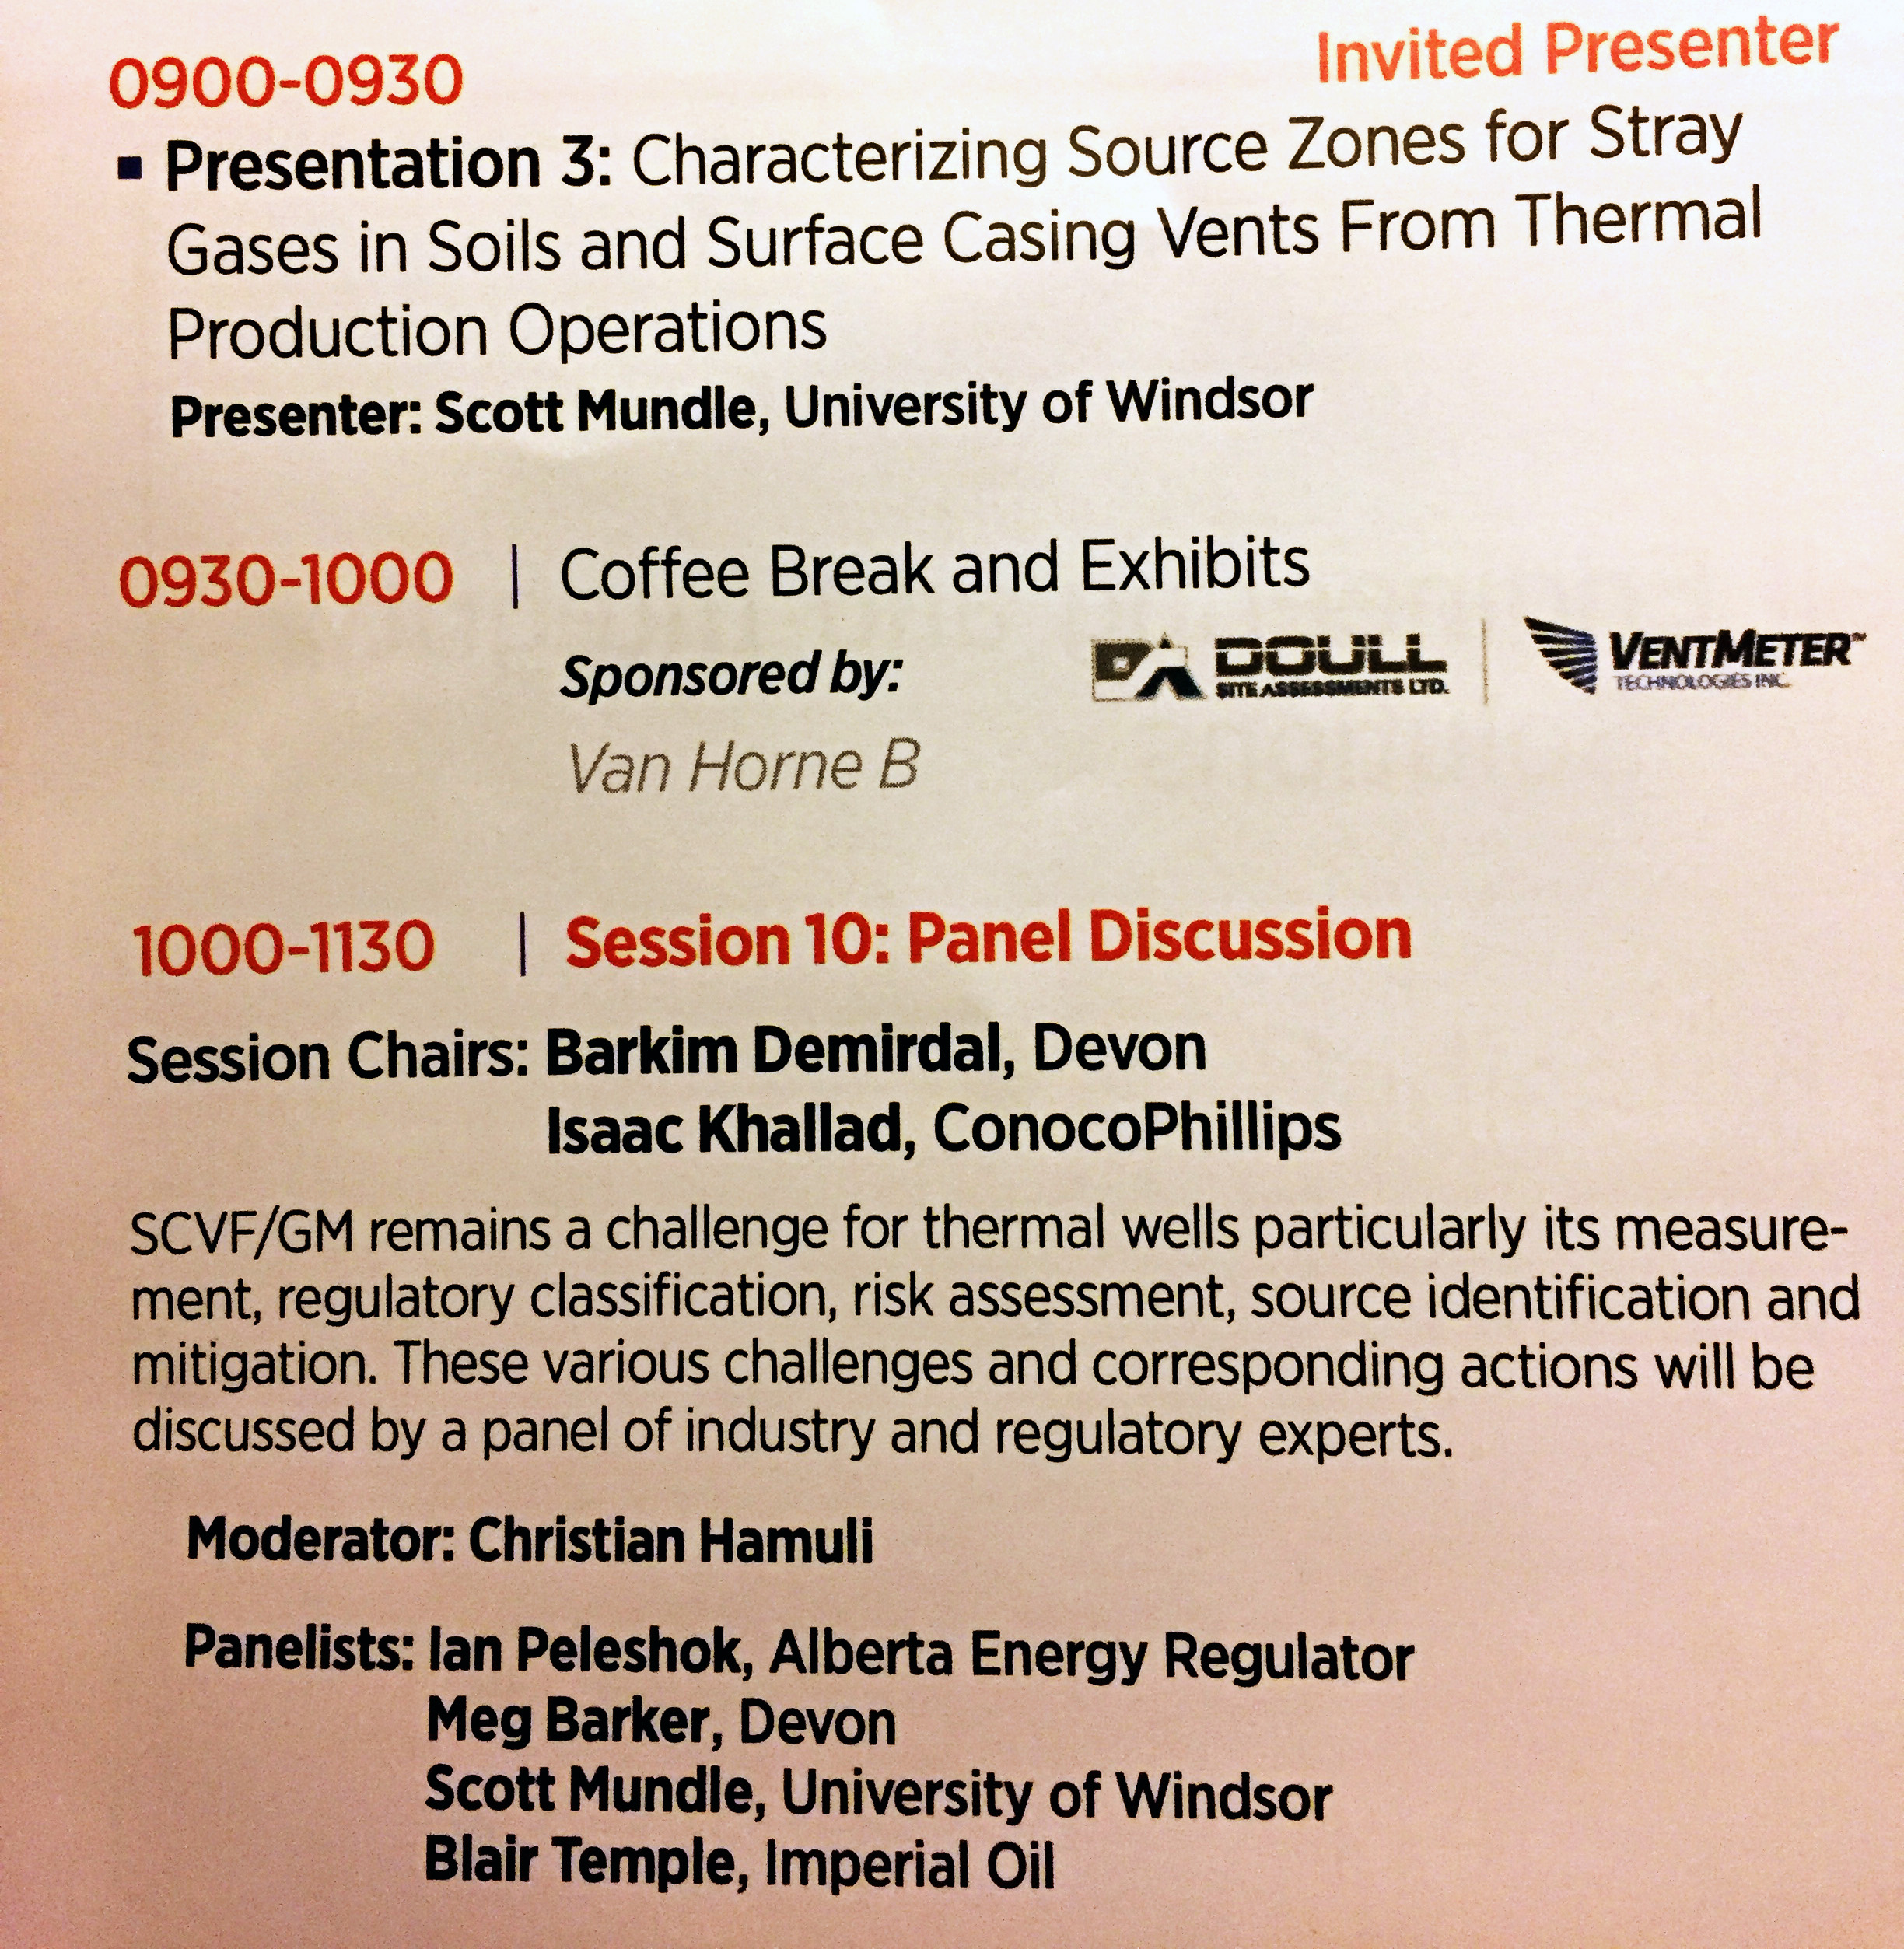 Scott Mundle invited speaker and panelist at SPE thermal